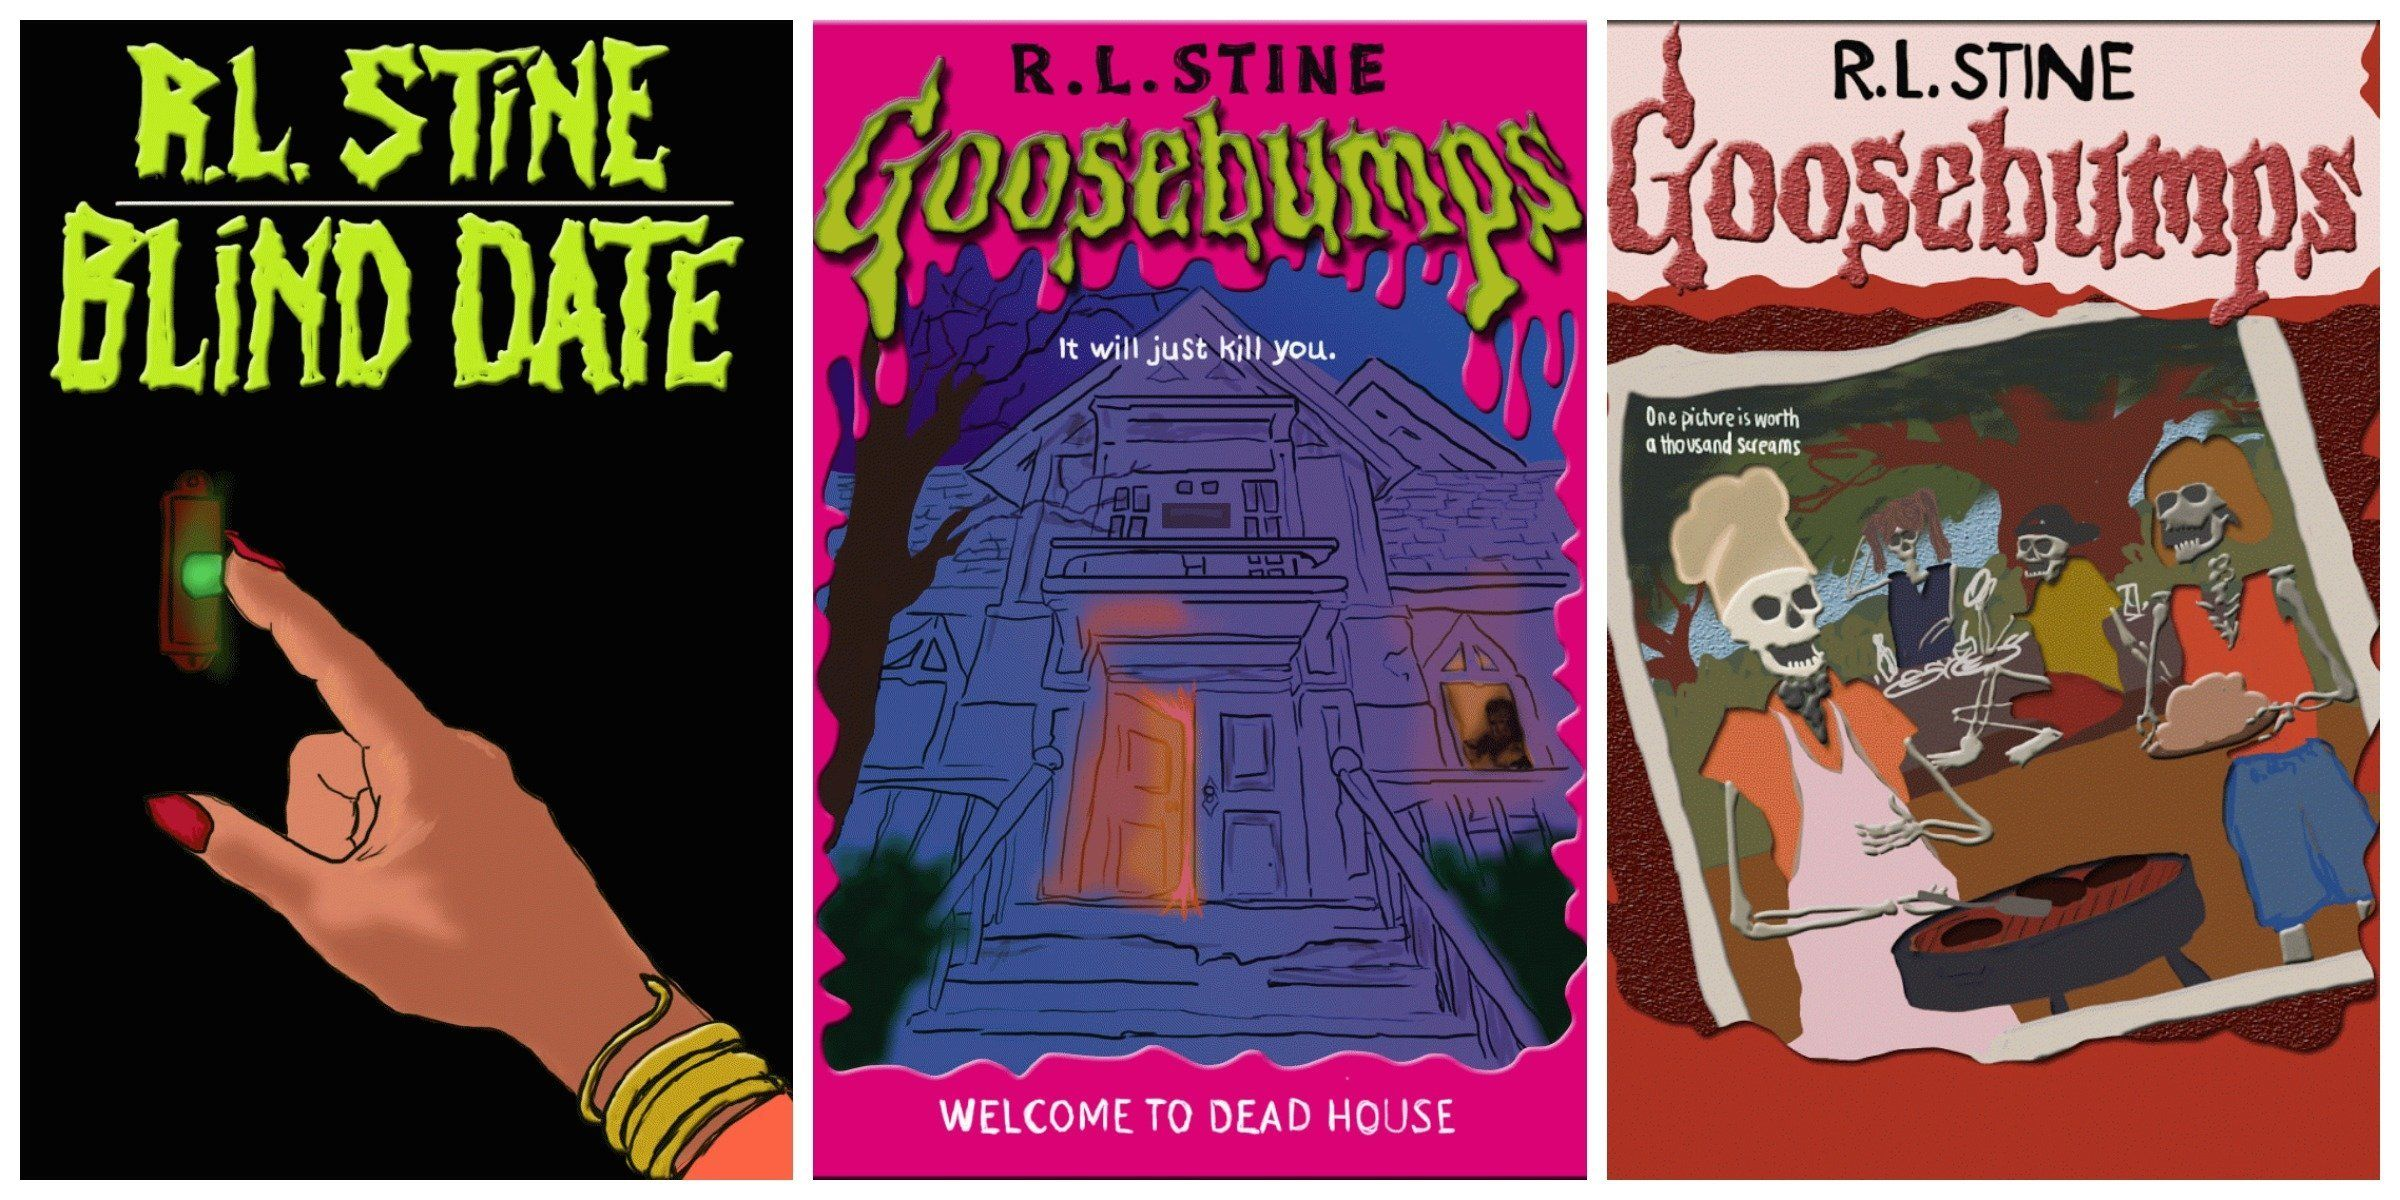 Read This And Die An Interview With RL Stine HuffPost